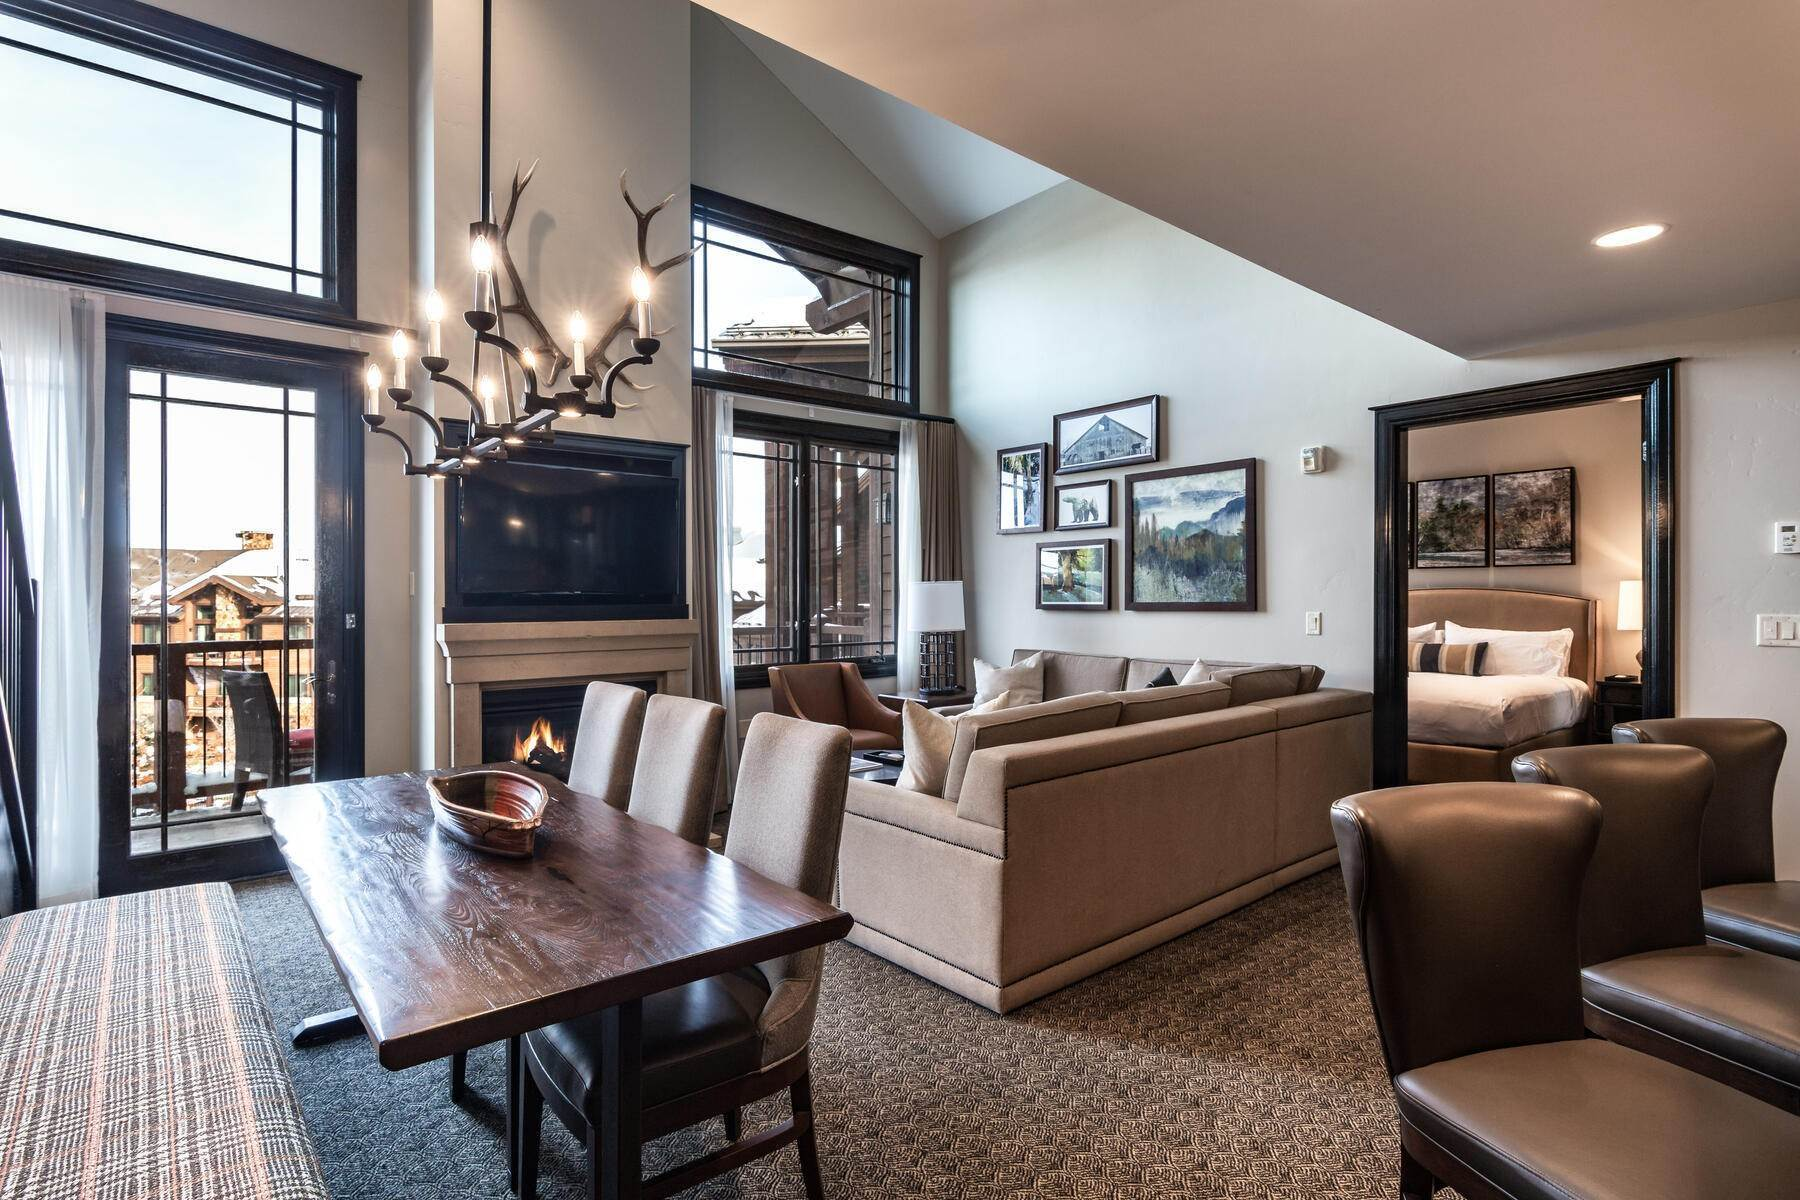 Condominiums at Only 4-Bedroom Available at Waldorf Astoria, Top Floor, Penthouse Unit 2100 W Frostwood Blvd, #7117 Park City, Utah 84098 United States